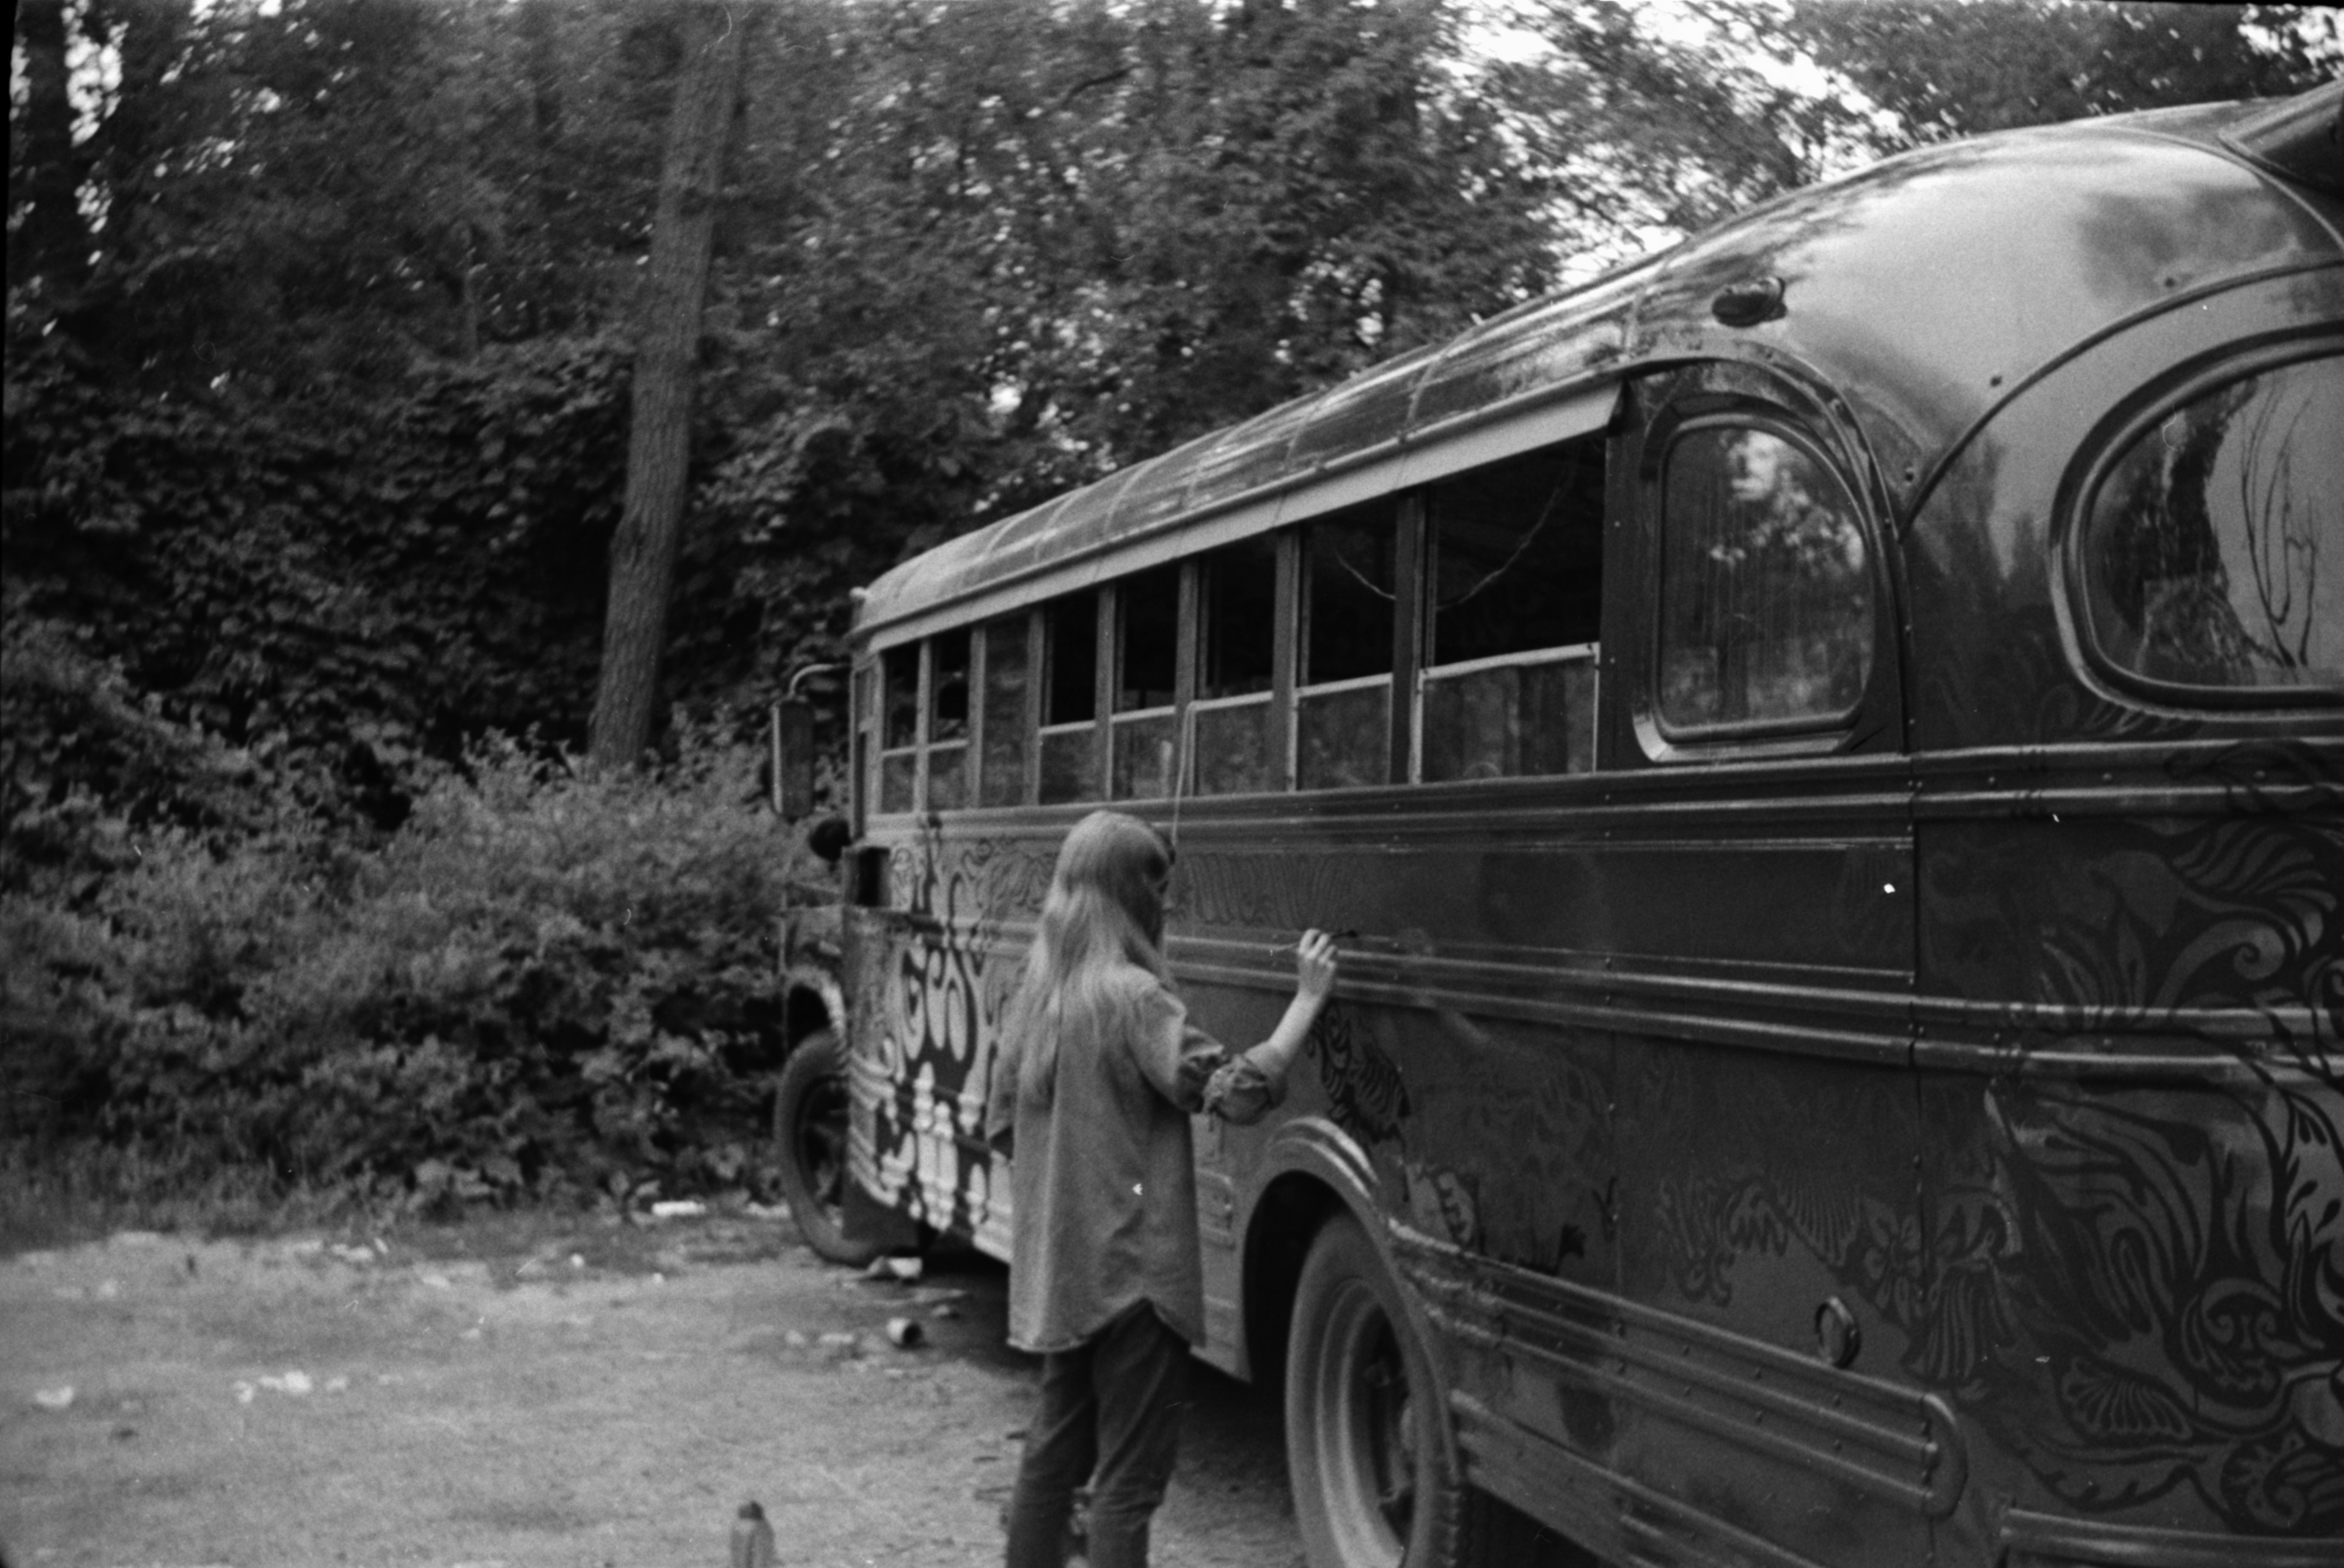 Hippie Bus, July 1967 image